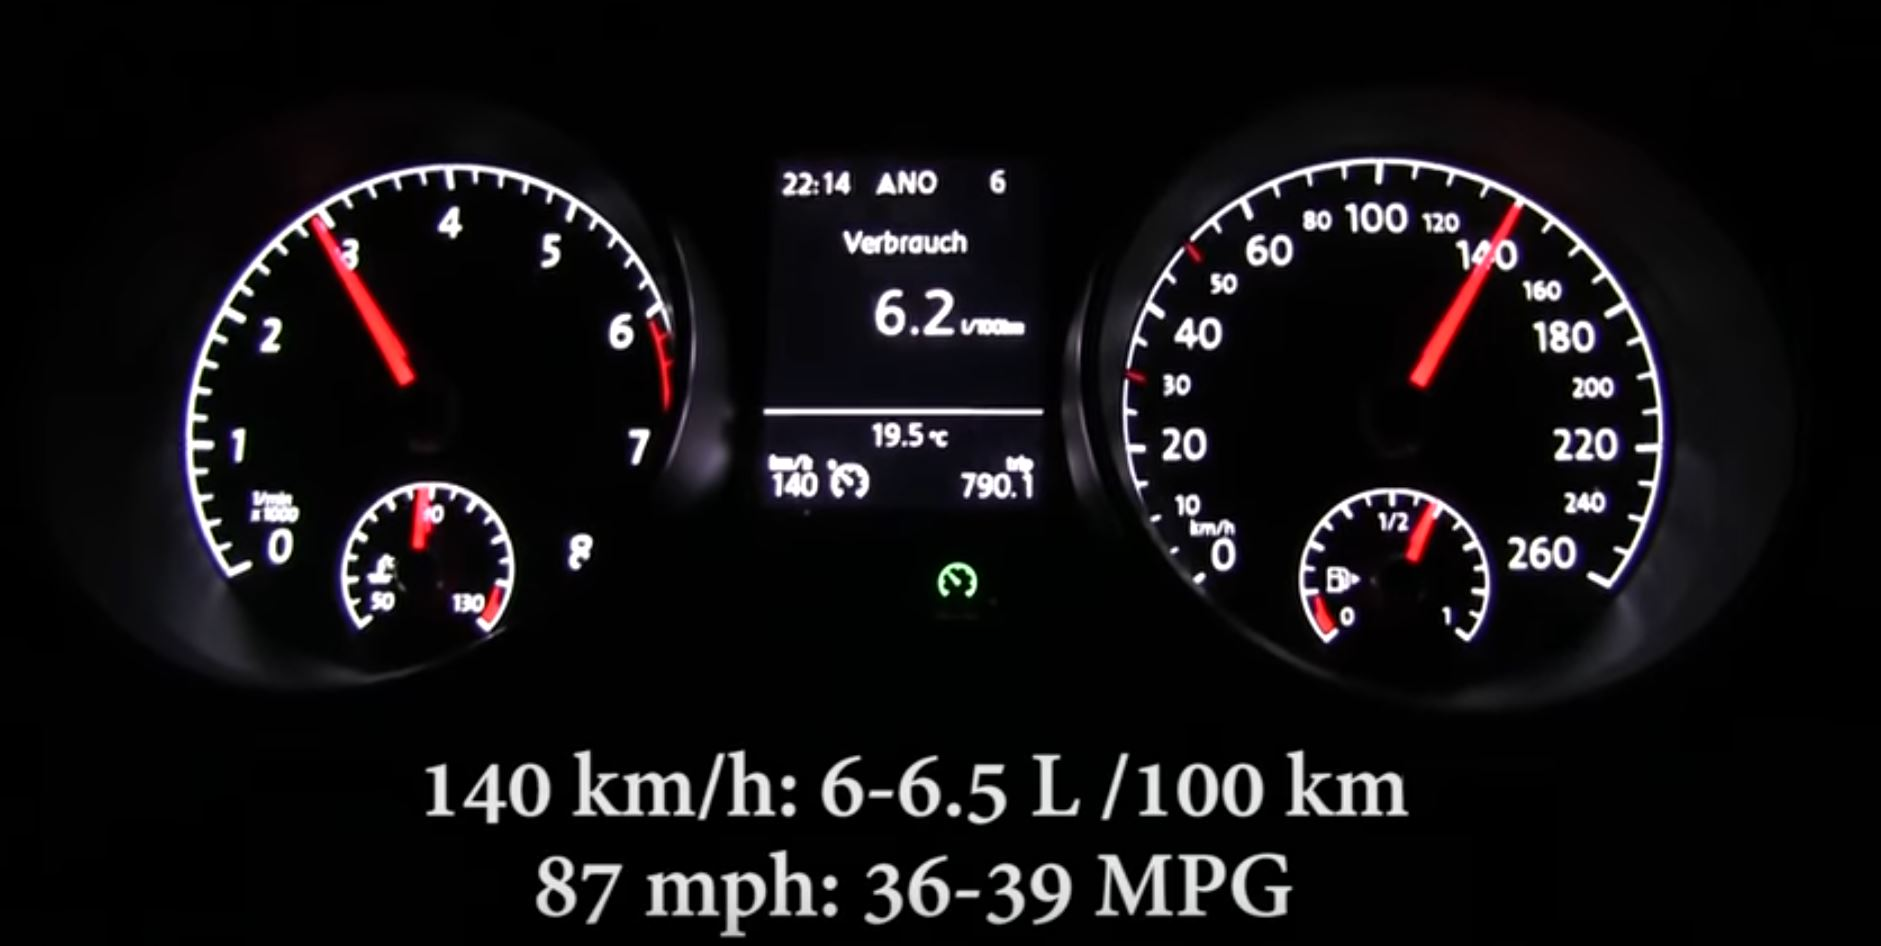 2018 VW Golf 1 0 TSI 110 HP Acceleration and Full